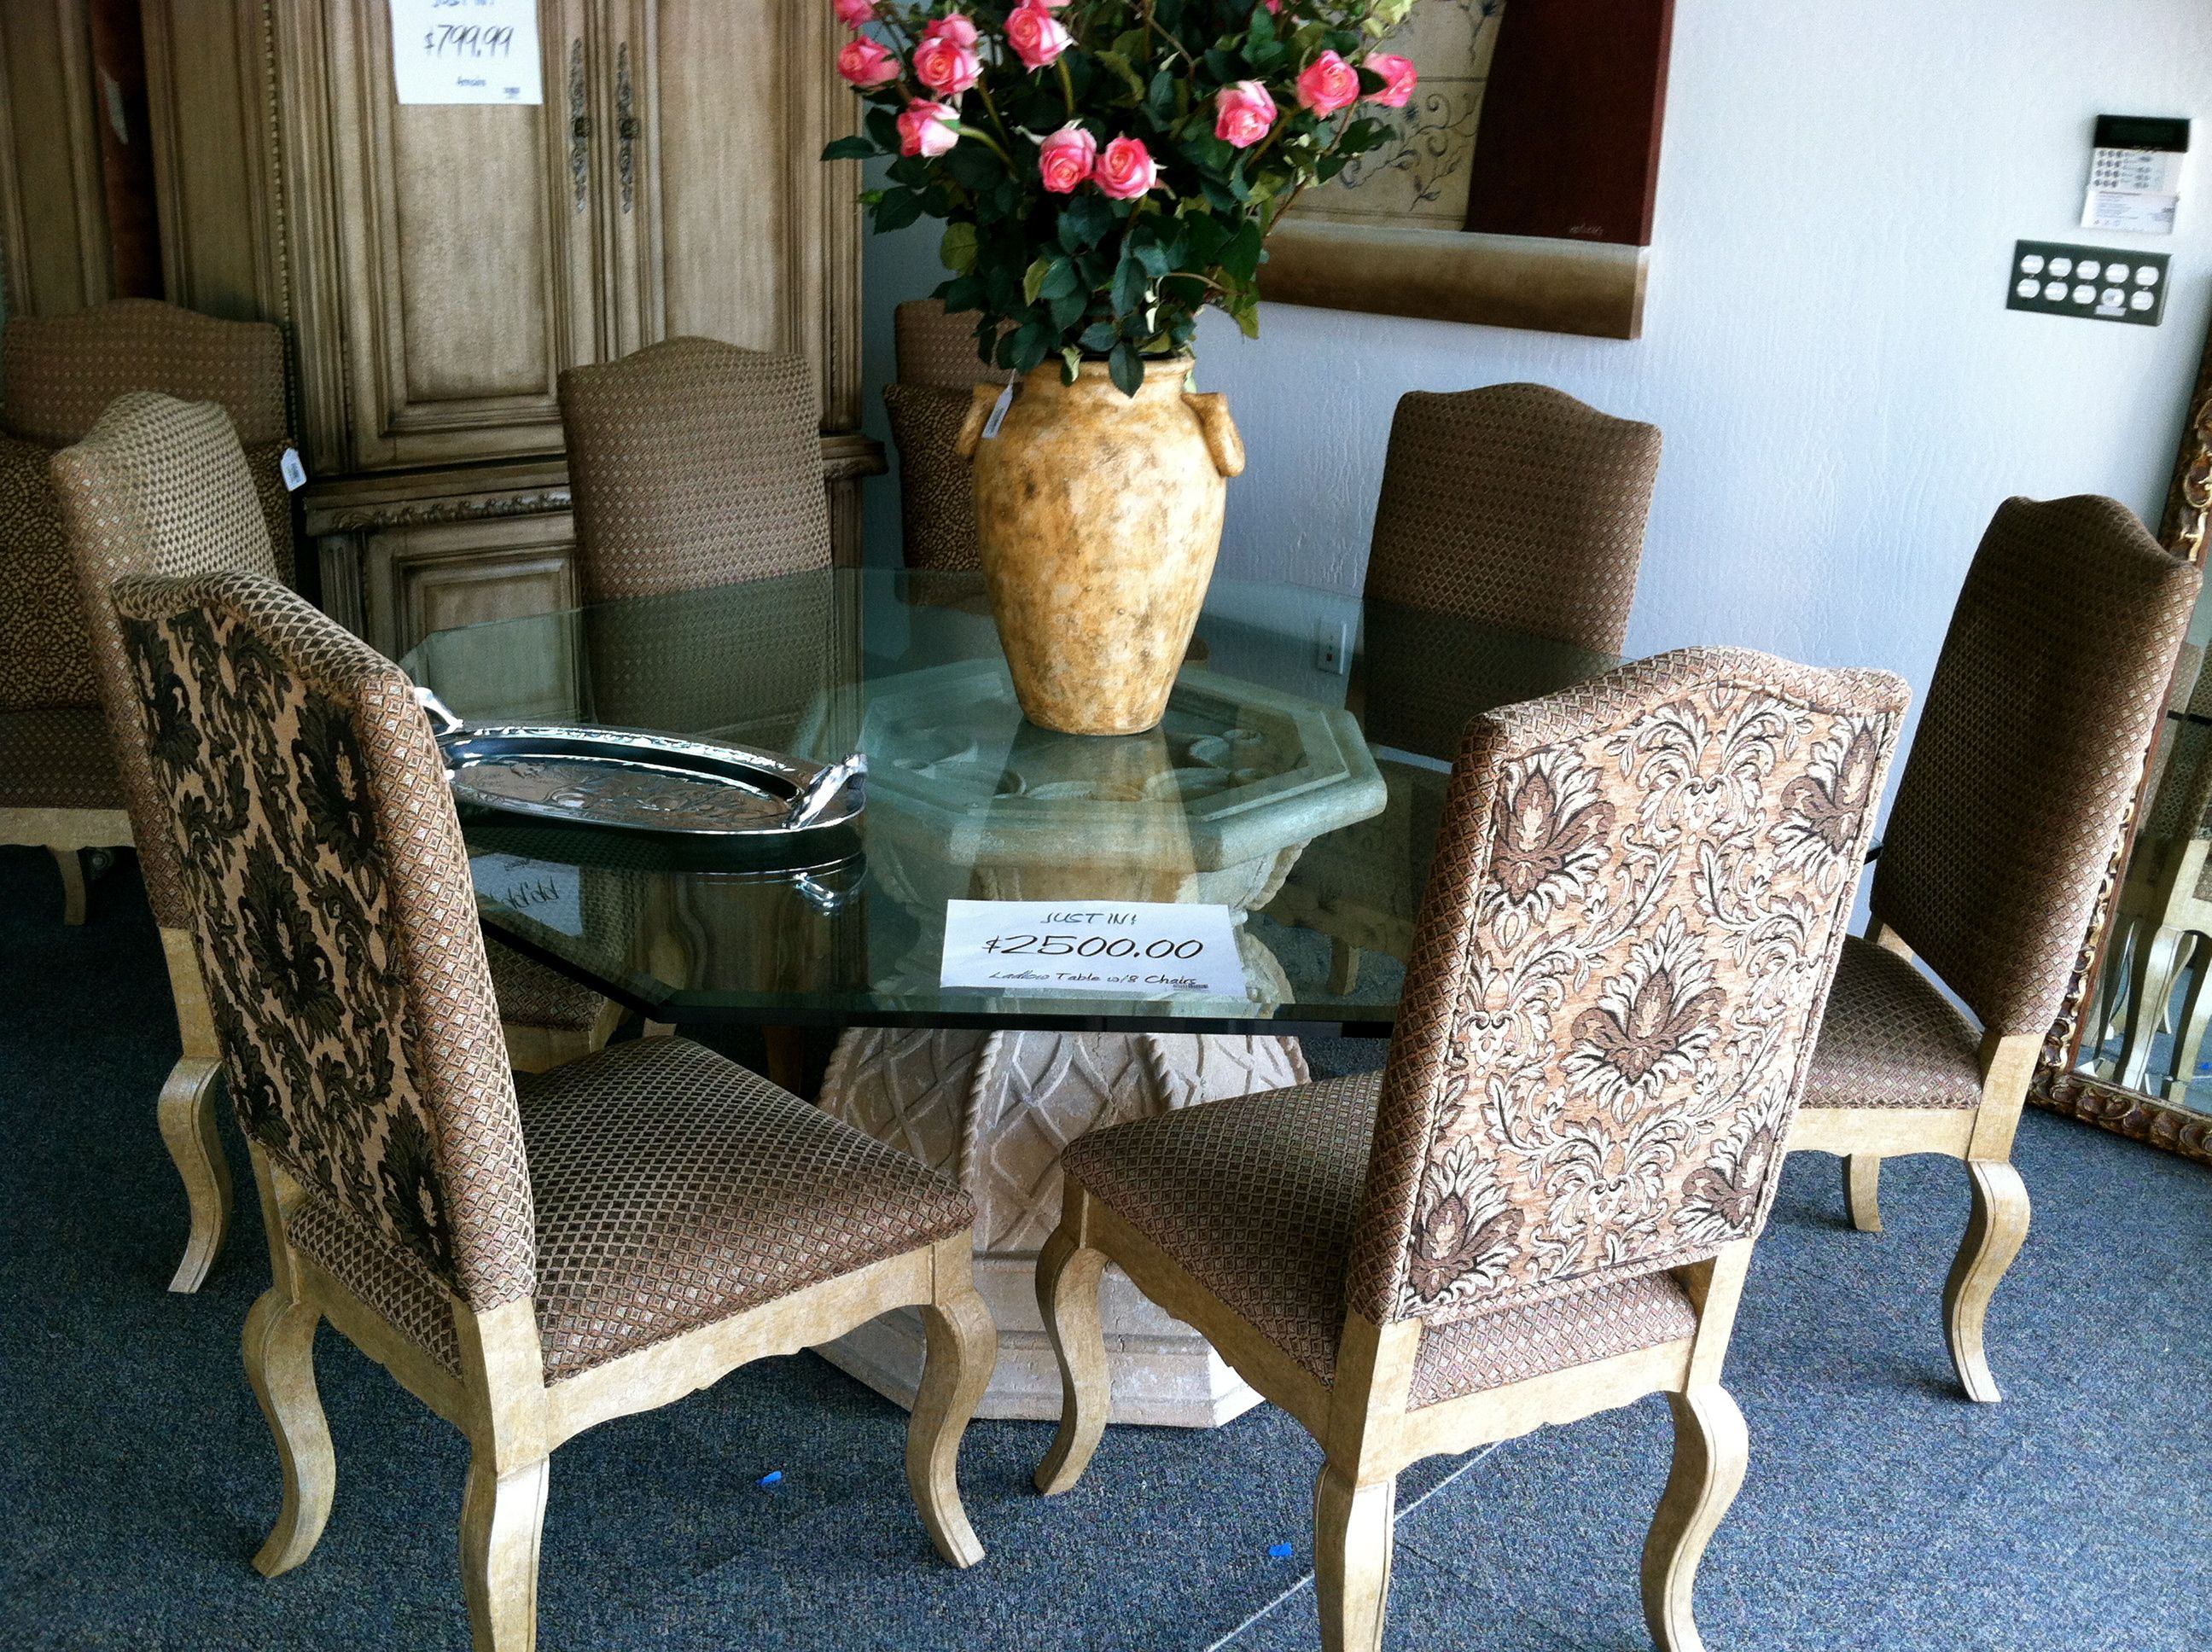 Amazing Table With 8 Chairs Iconsign Stores Thomas Road This Is An Incredible Glass Top Table Wi Used Furniture Stores Consignment Furniture Furniture Store